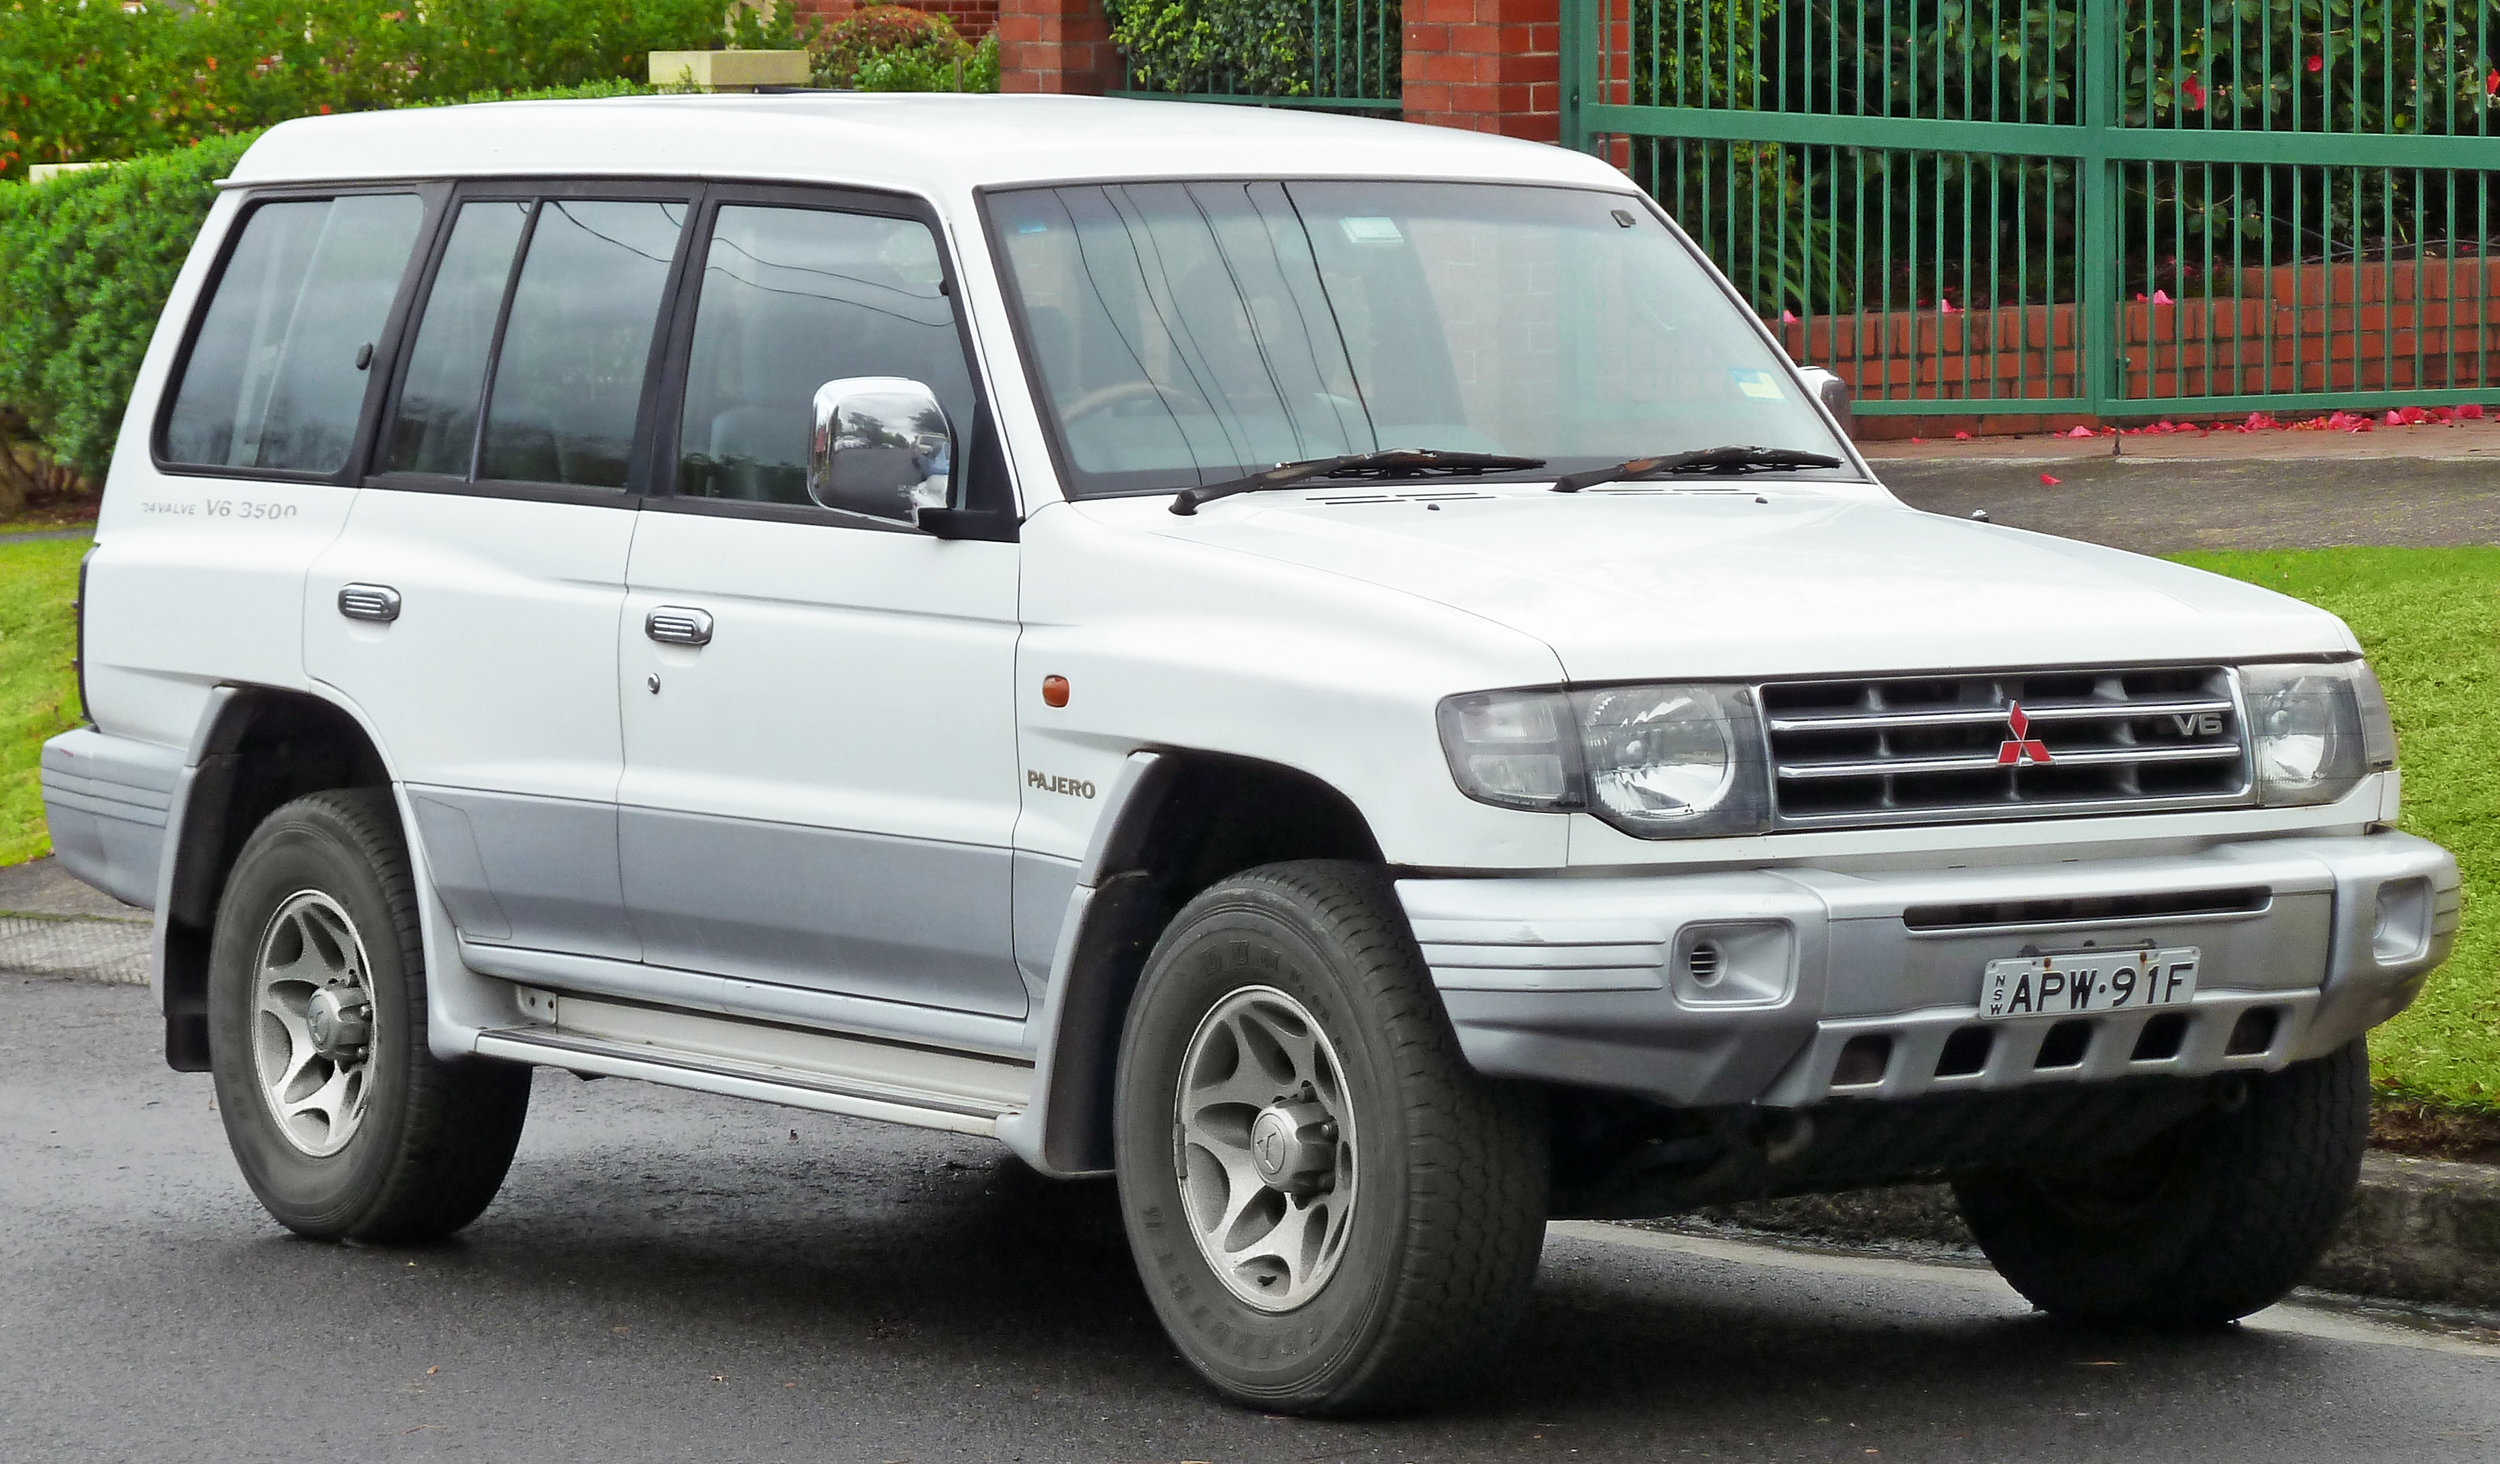 The popularity of 4x4s like the Mitsubishi Pajero prompted Ford to develop the Territory SUV